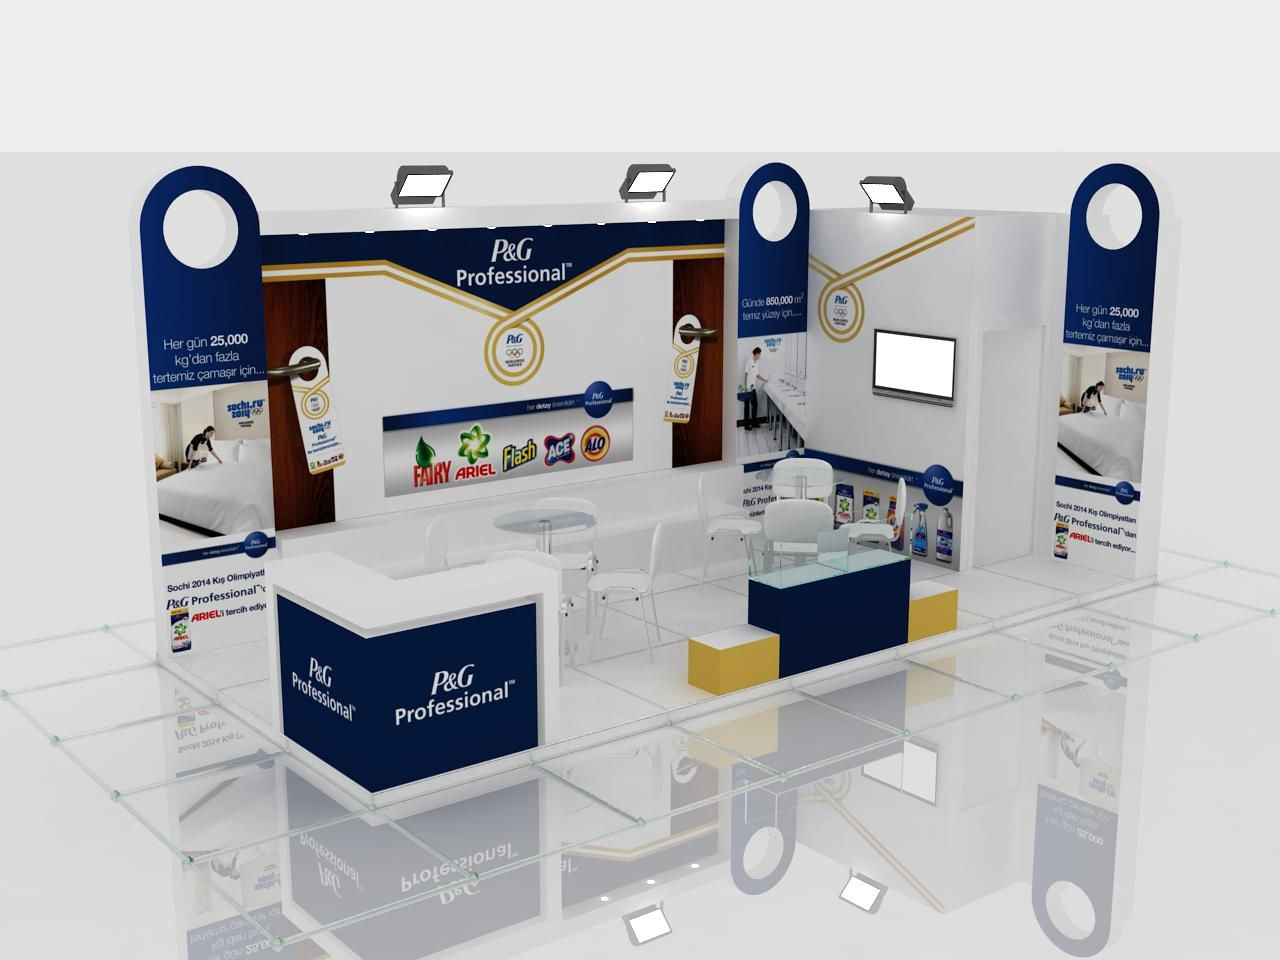 Exhibition Stand Application Form : Interclean istanbul exhibition wood stand application service